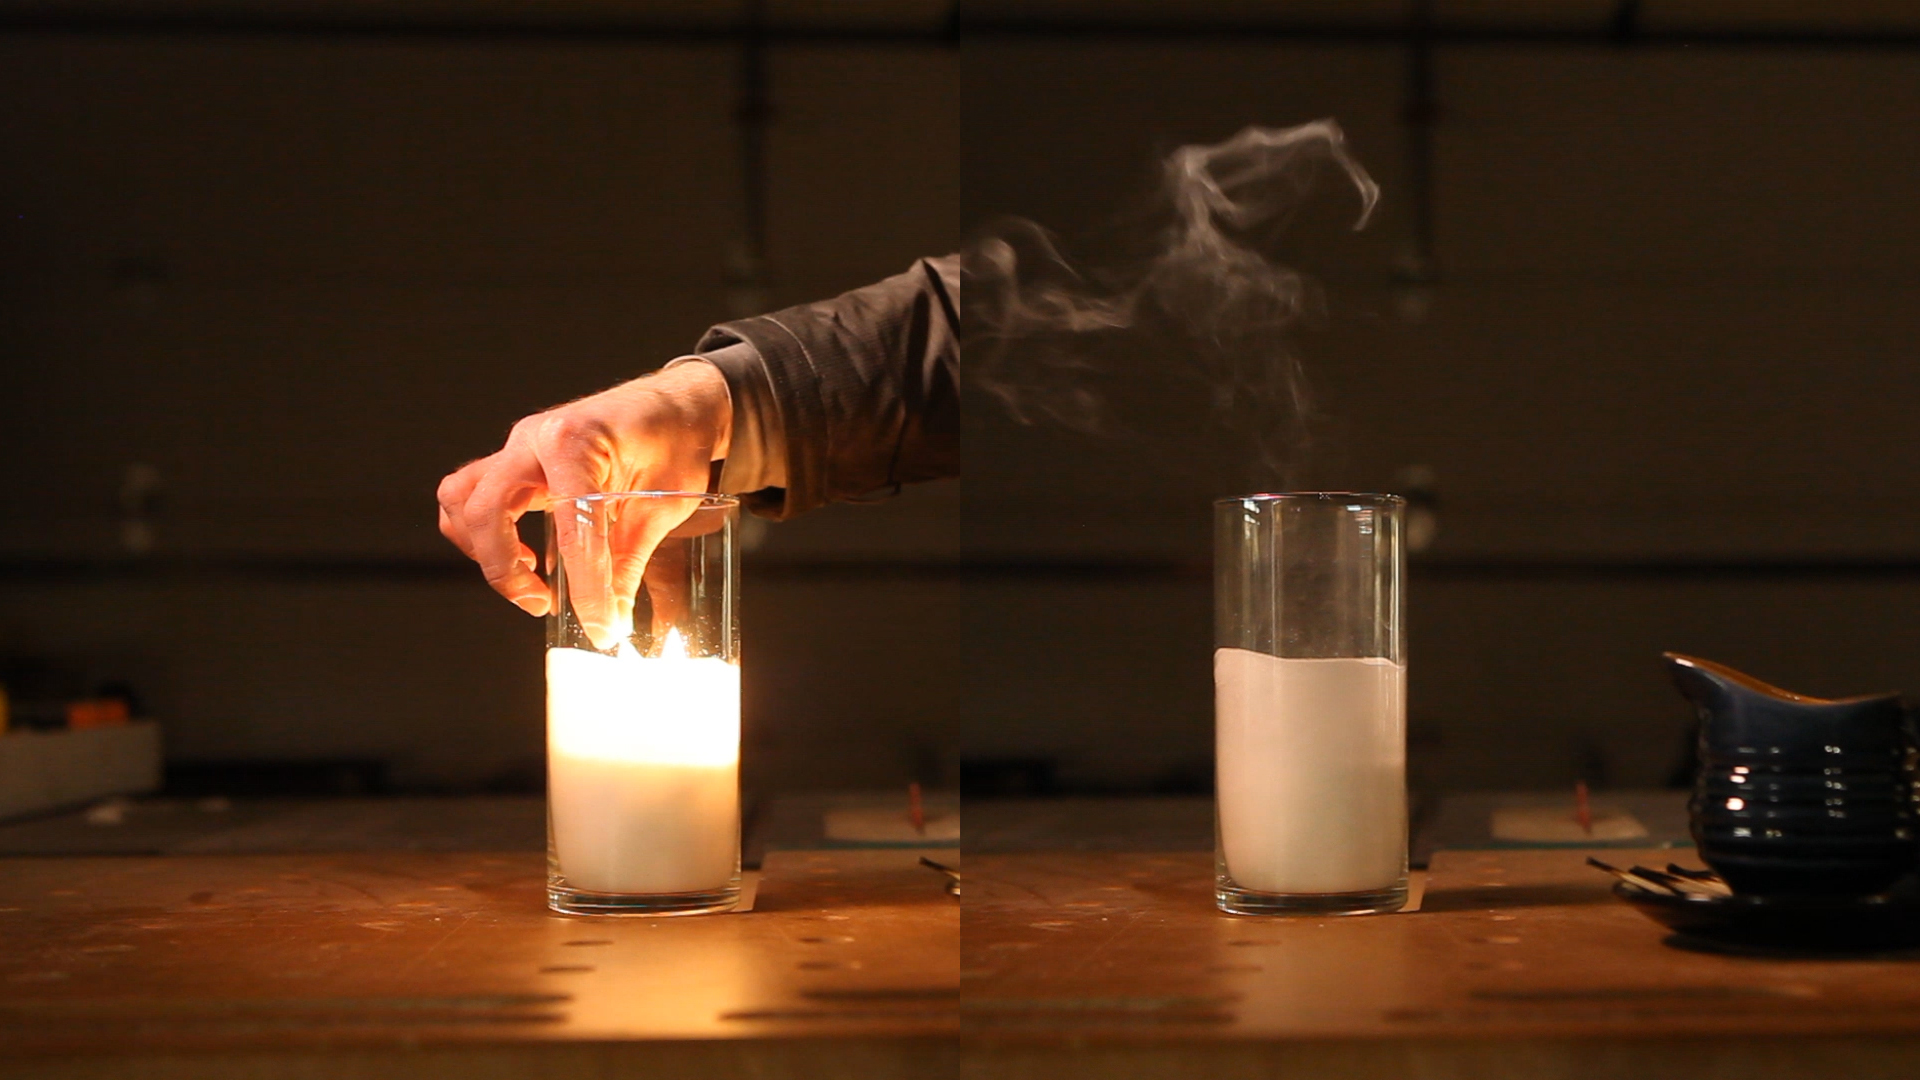 Candle-Part-1-Thumb2